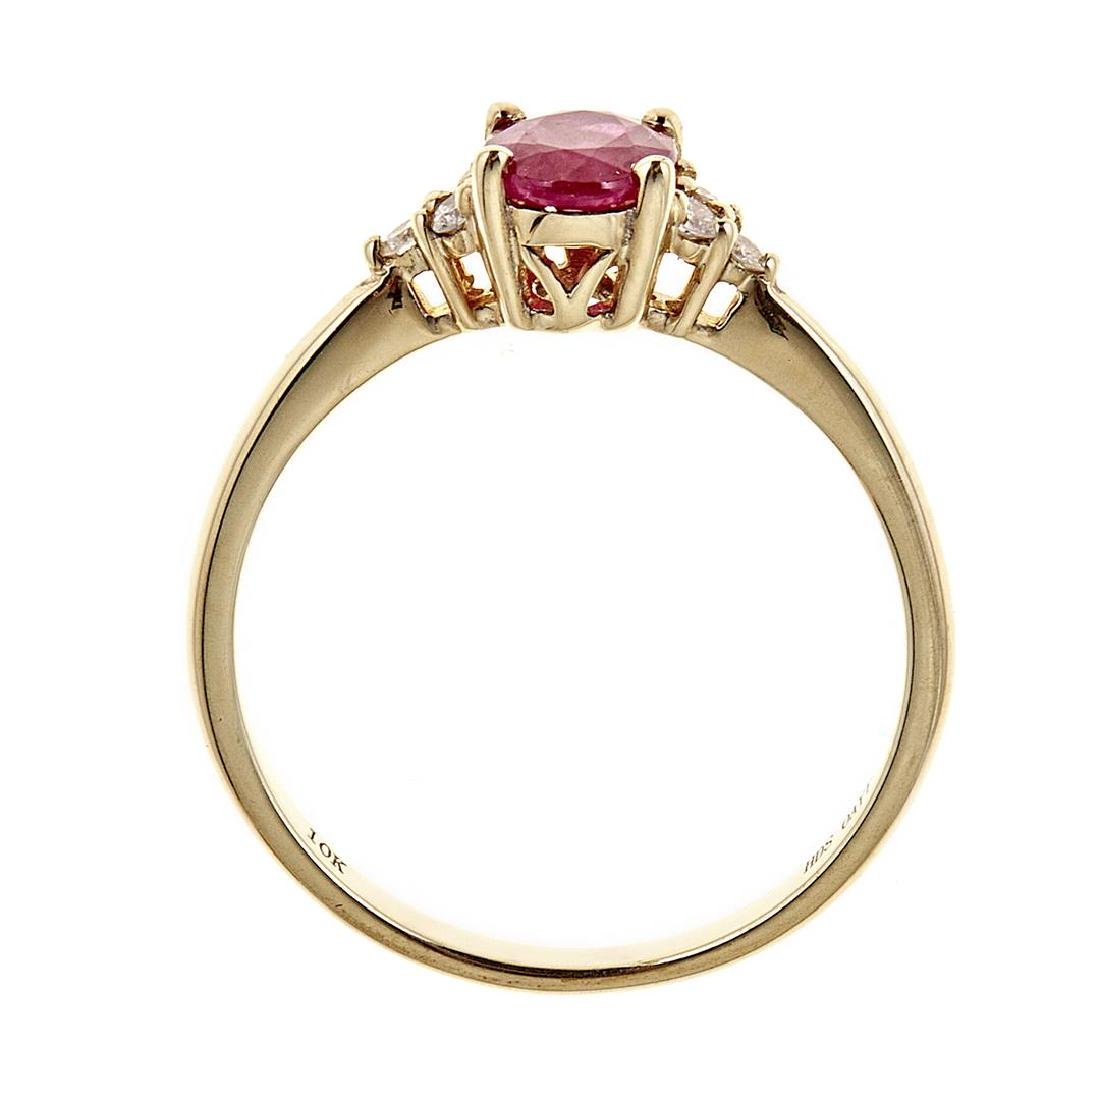 0.82 ctw Ruby and Diamond Ring - 10KT Yellow Gold - 3